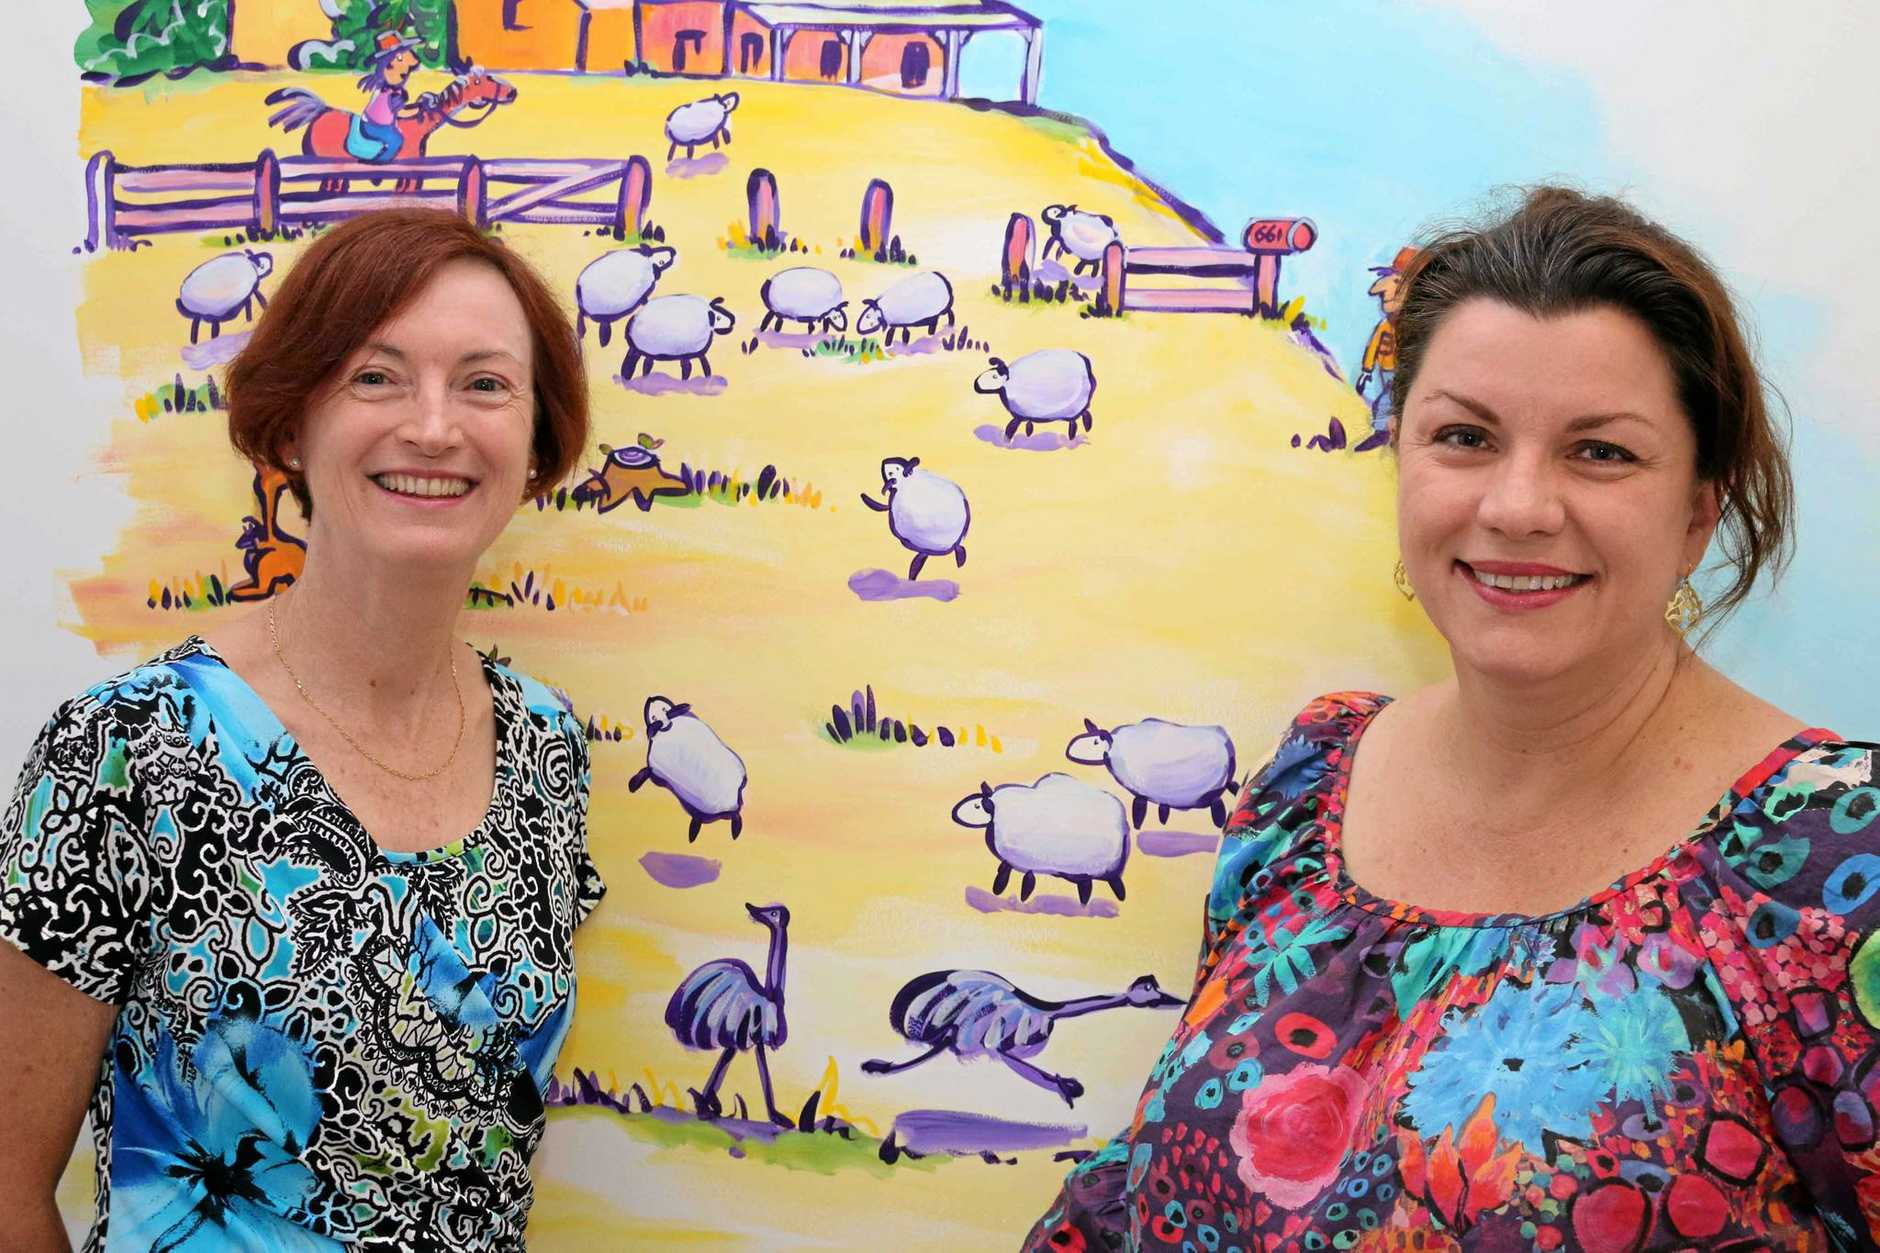 BreastScreen Queensland Toowoomba Service clinical director Dr Patricia Dowling and artist Anna Bartlett